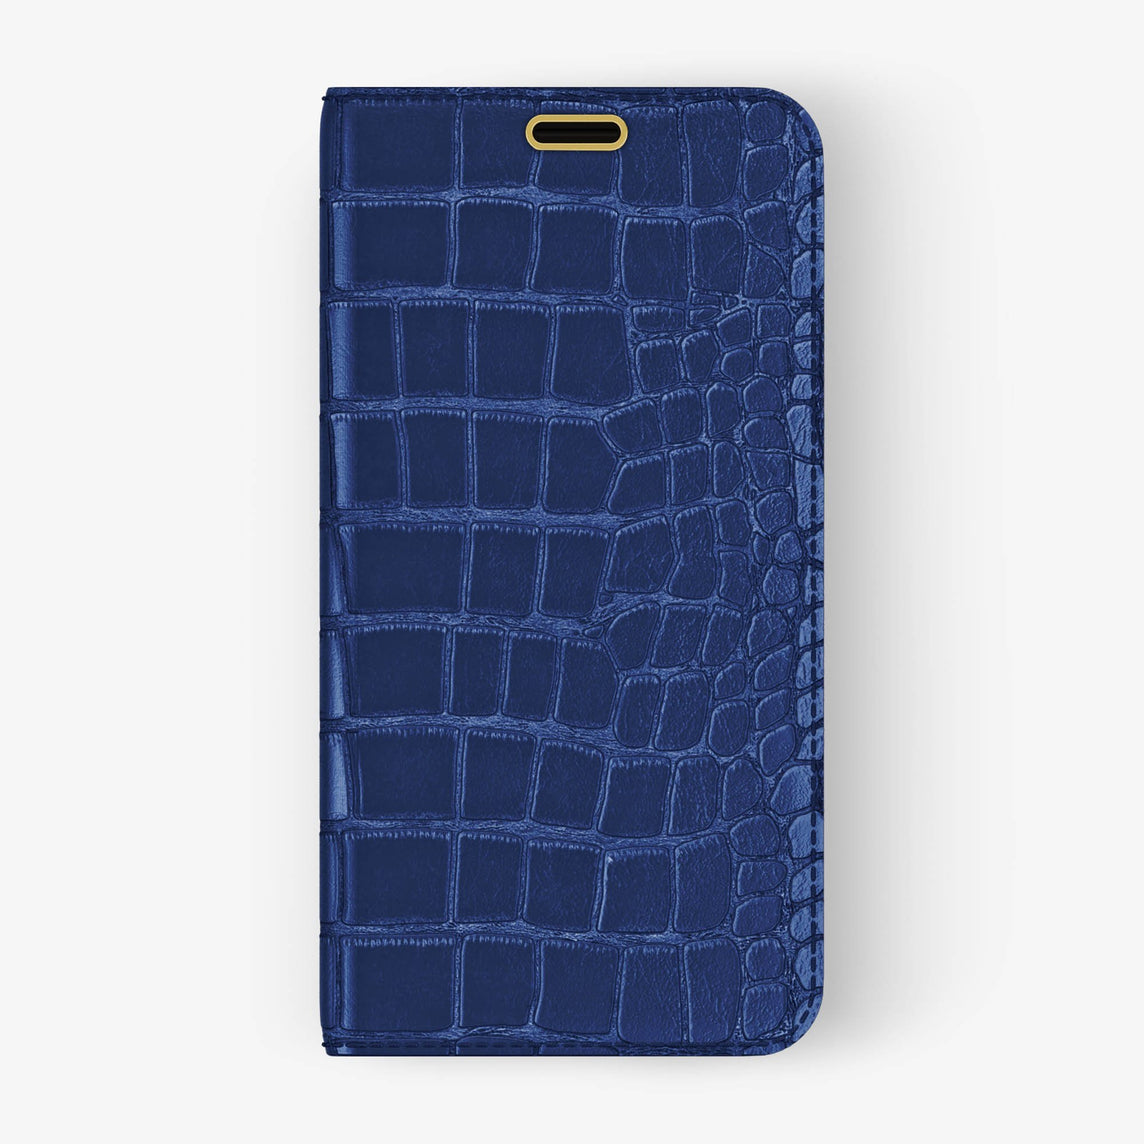 Alligator Folio Case iPhone X/Xs | Navy Blue - Yellow Gold without-personalization